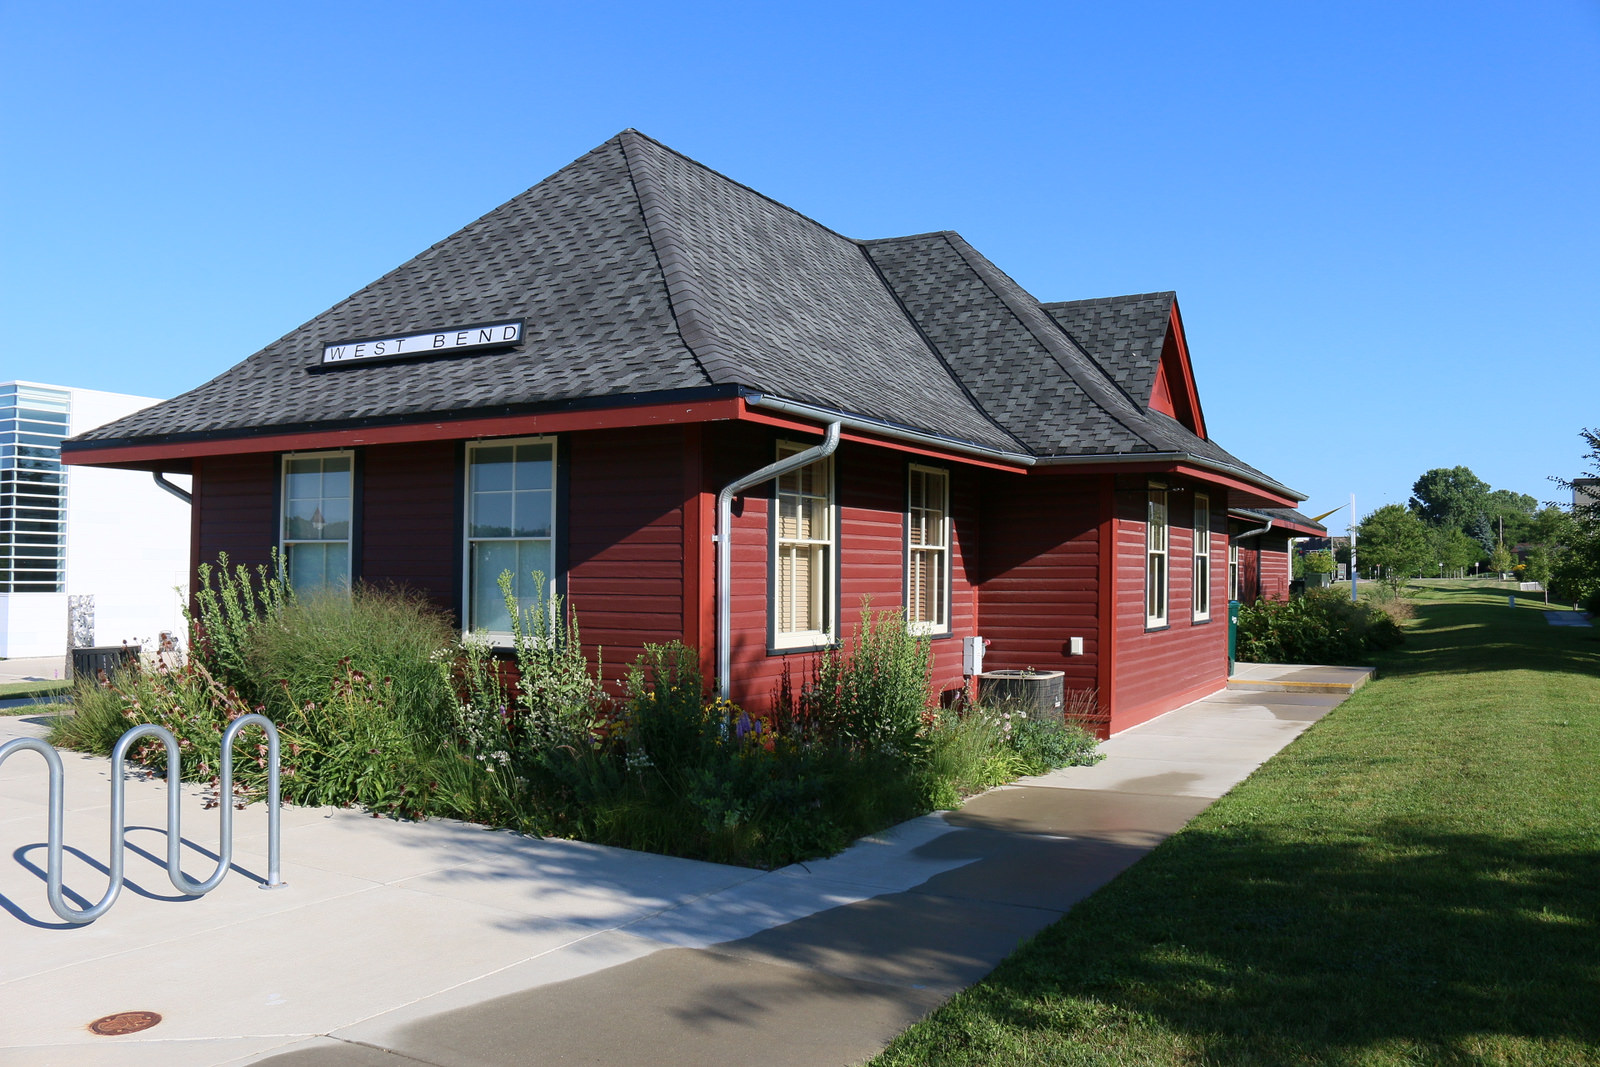 <table class=&quot;lightbox&quot;><tr><td colspan=2 class=&quot;lightbox-title&quot;>West Bend Train Depot</td></tr><tr><td colspan=2 class=&quot;lightbox-caption&quot;>A 2016 photograph of the restored West Bend railroad depot, originally built in 1900.</td></tr><tr><td colspan=2 class=&quot;lightbox-spacer&quot;></td></tr><tr class=&quot;lightbox-detail&quot;><td class=&quot;cell-title&quot;>Source: </td><td class=&quot;cell-value&quot;>From Flickr. Photograph by Ryan Ojibway.<br /><a href=&quot;https://www.flickr.com/photos/jibby7/28092678543/&quot; target=&quot;_blank&quot;>Flickr</a></td></tr><tr class=&quot;filler-row&quot;><td colspan=2>&nbsp;</td></tr></table>